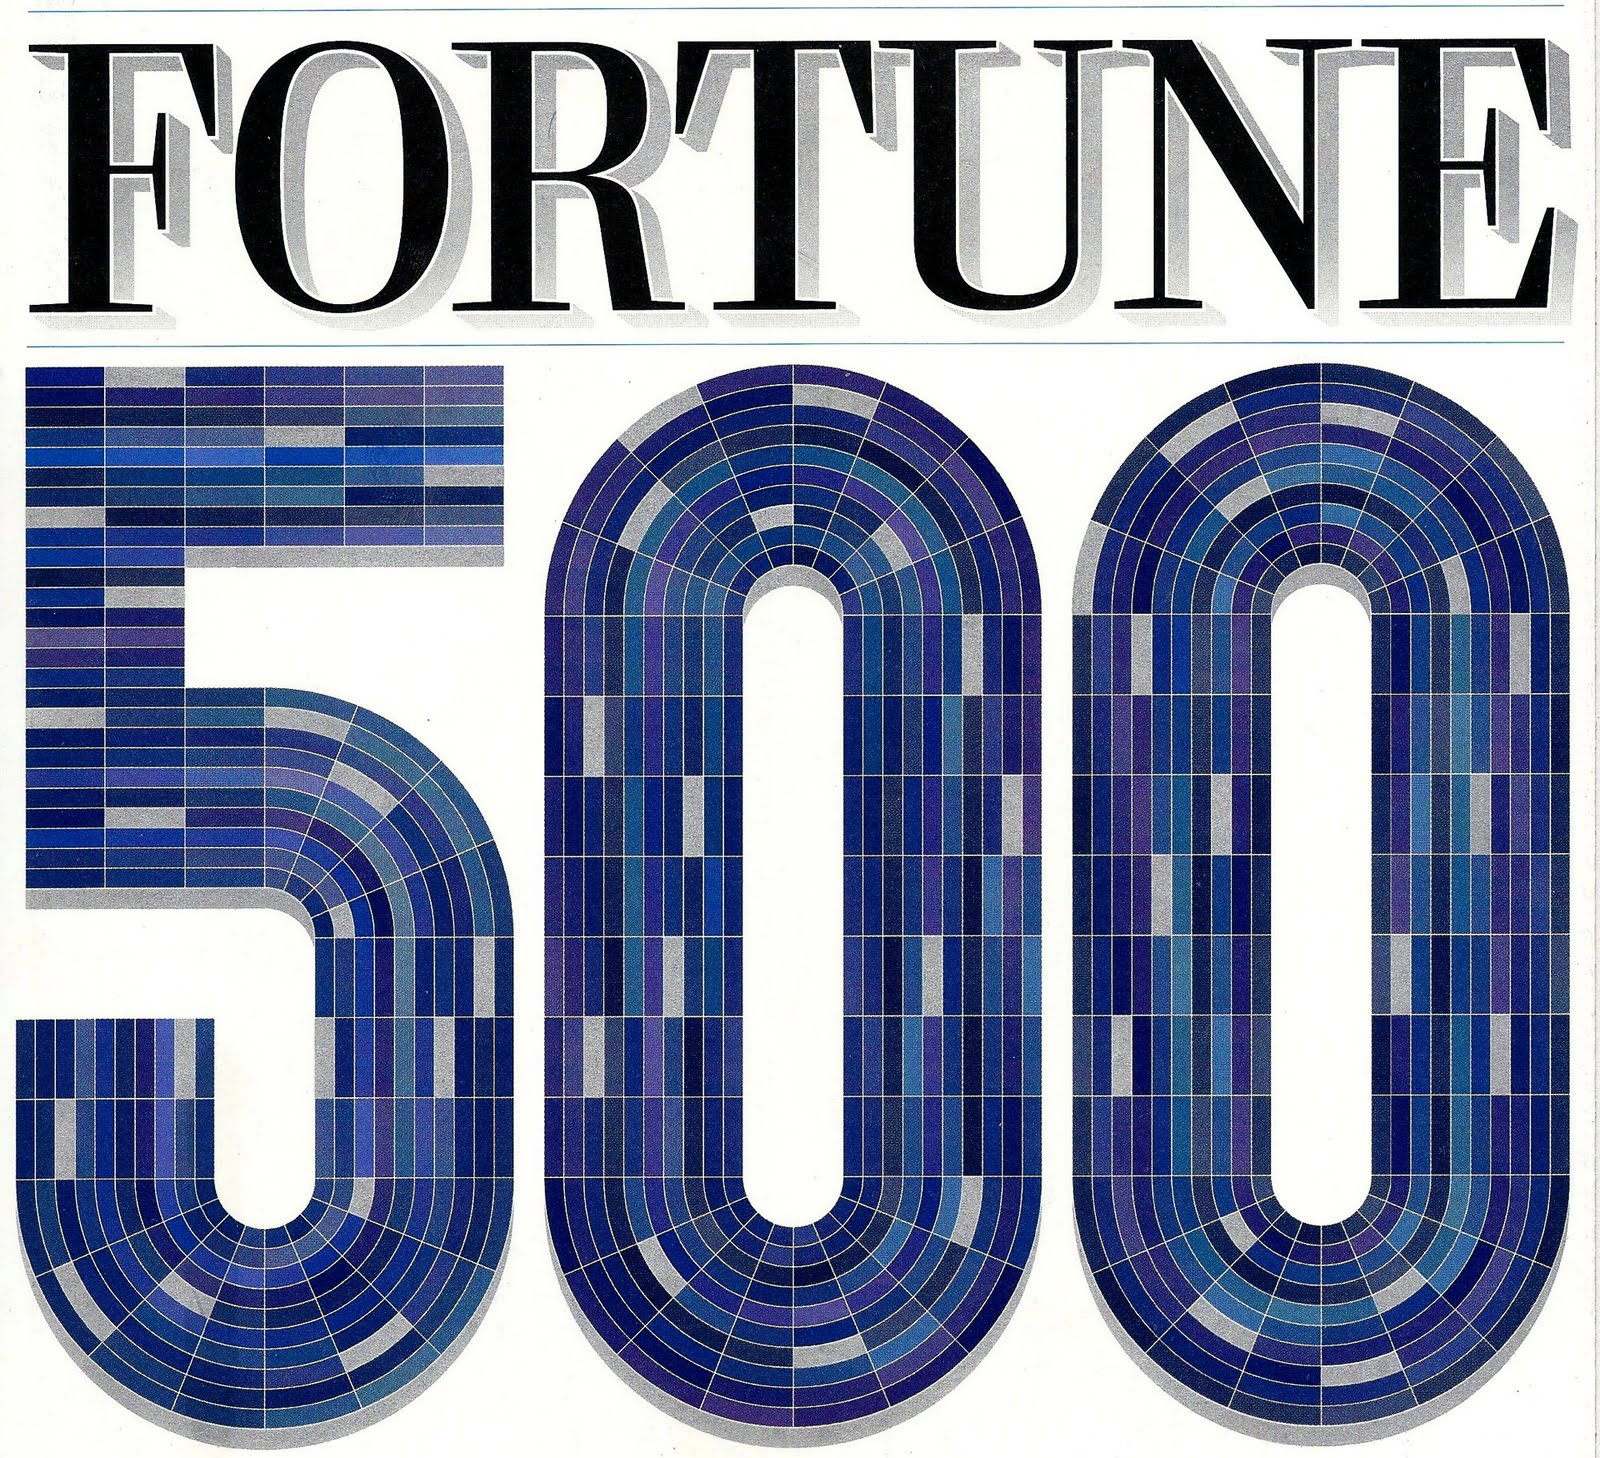 top 5 fortune 500 companies and List of fortune 500 companies for 2015 list of fortune 500 companies for 2016 compiled by zyxware, a leading drupal development company in india which has its operations in us, uk, canada, australia and middle east.